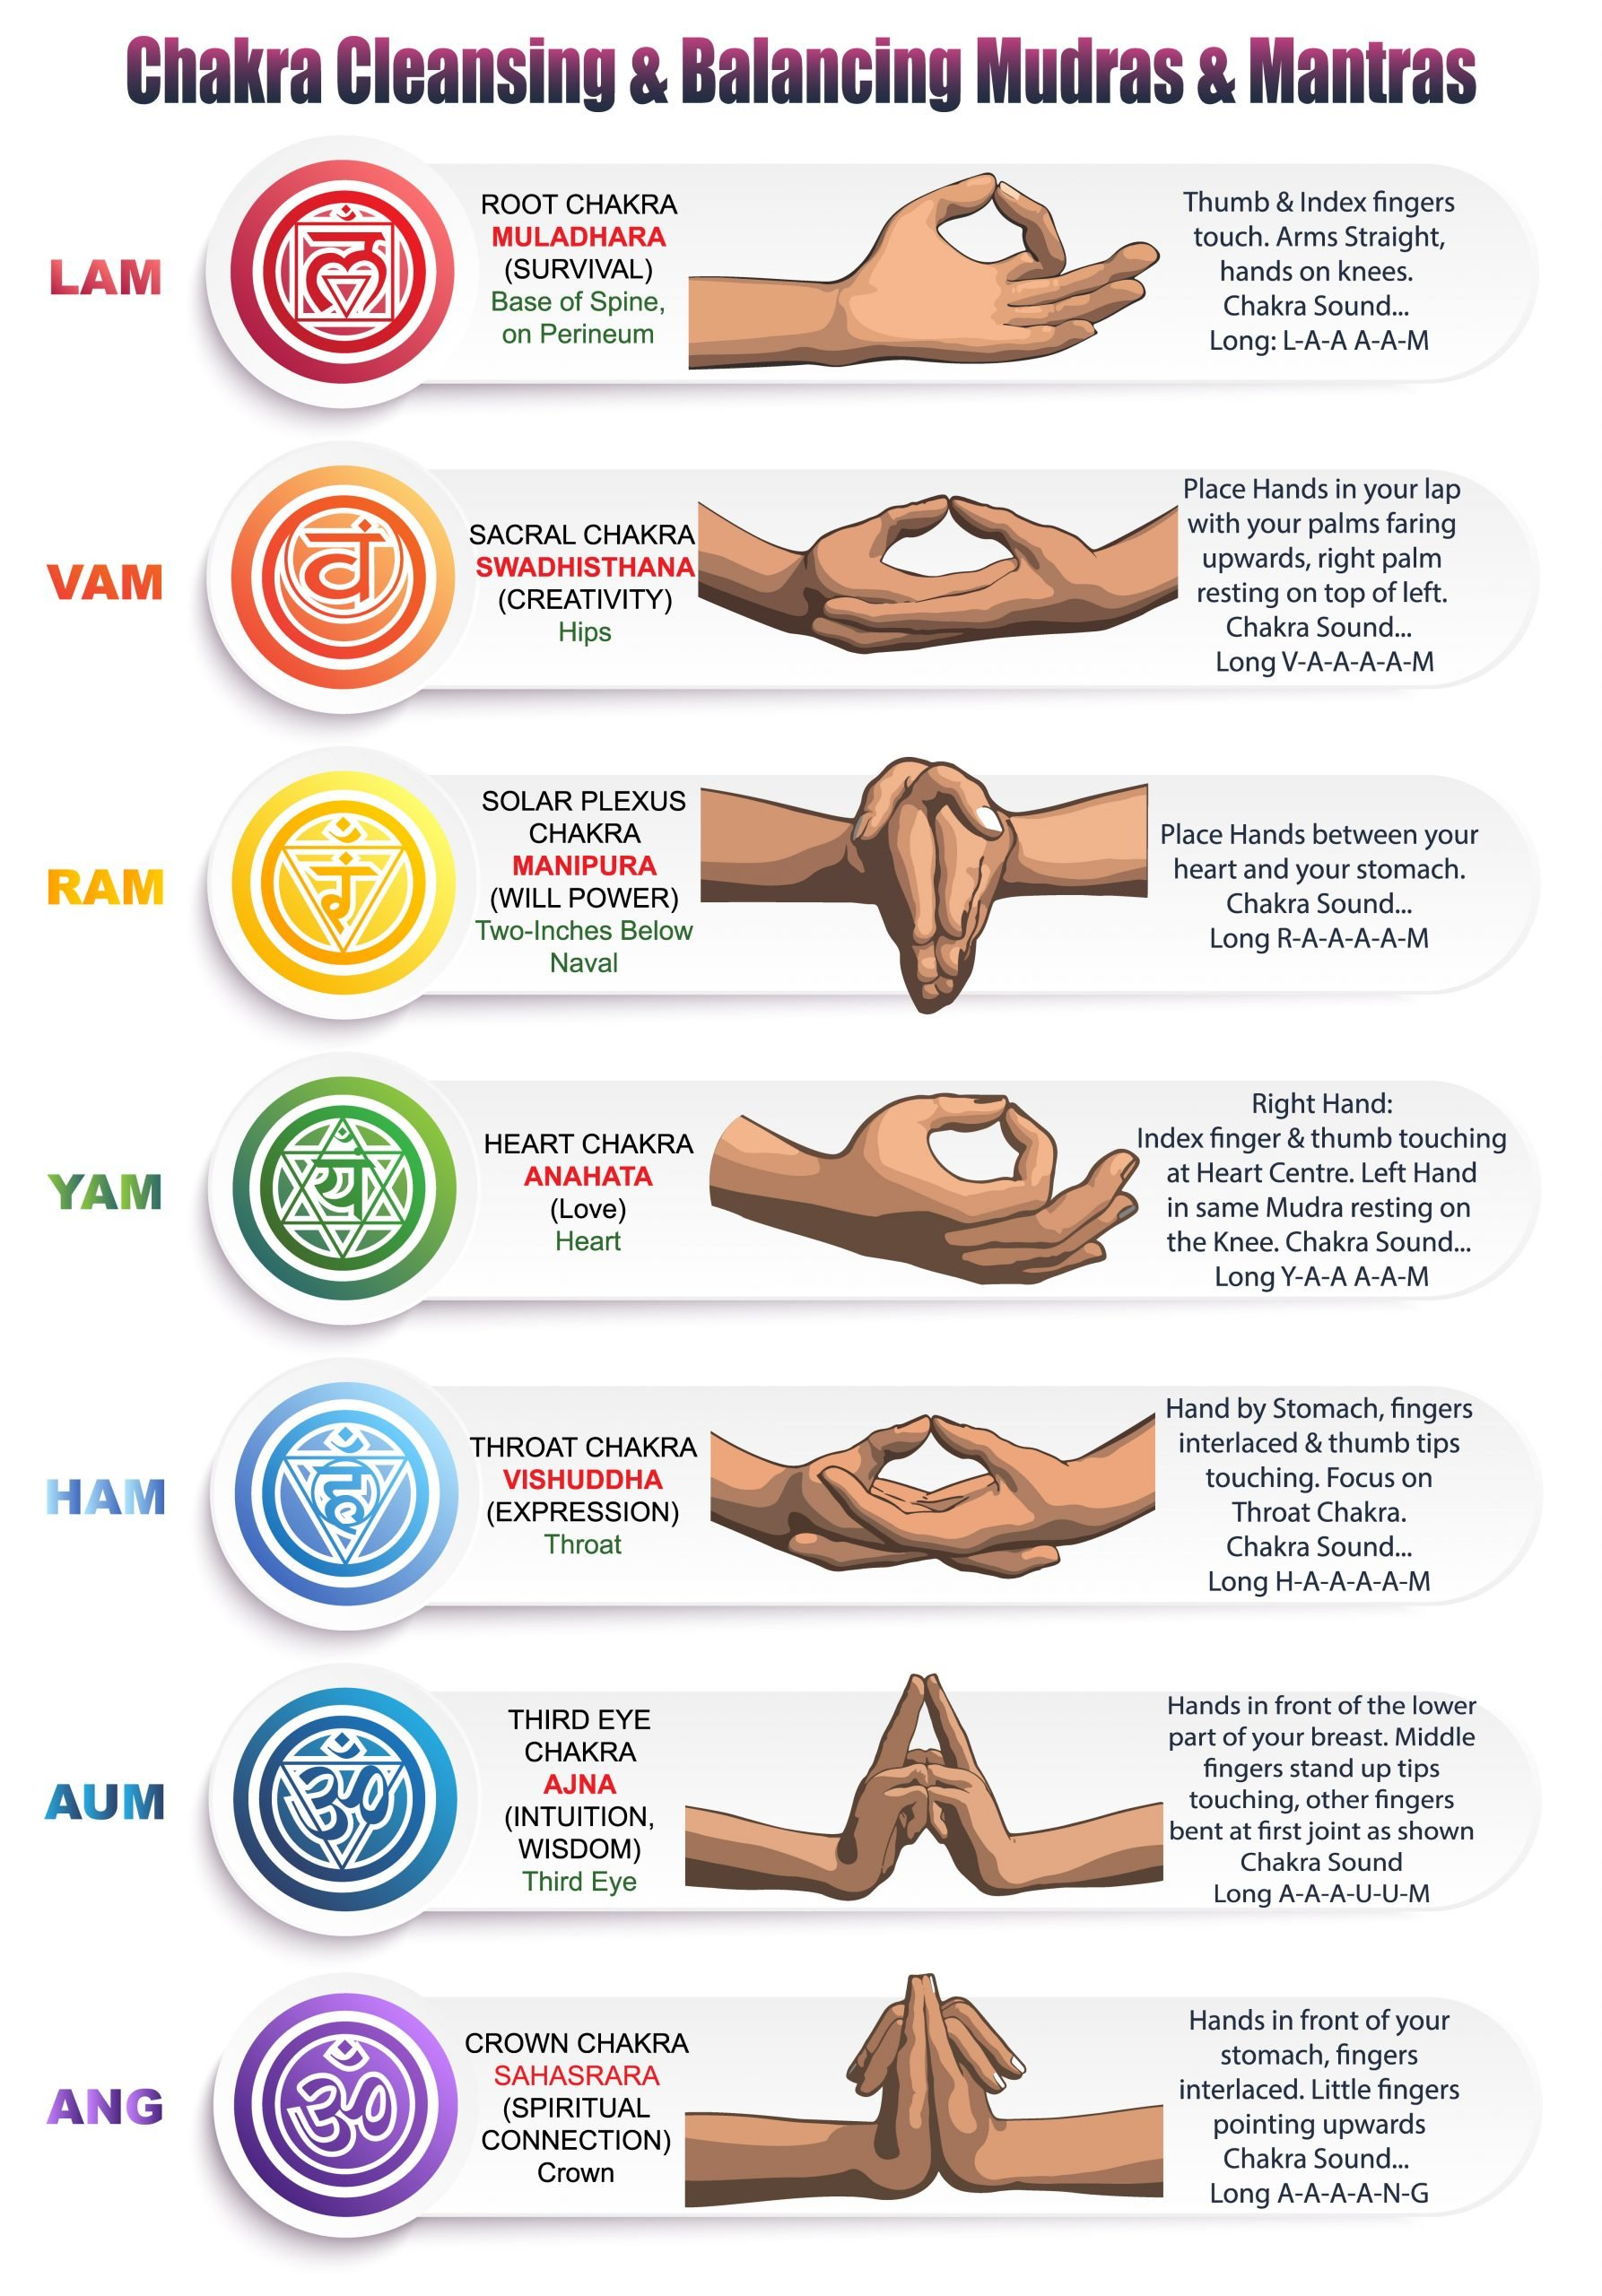 Chakras and mantras with mudras for each